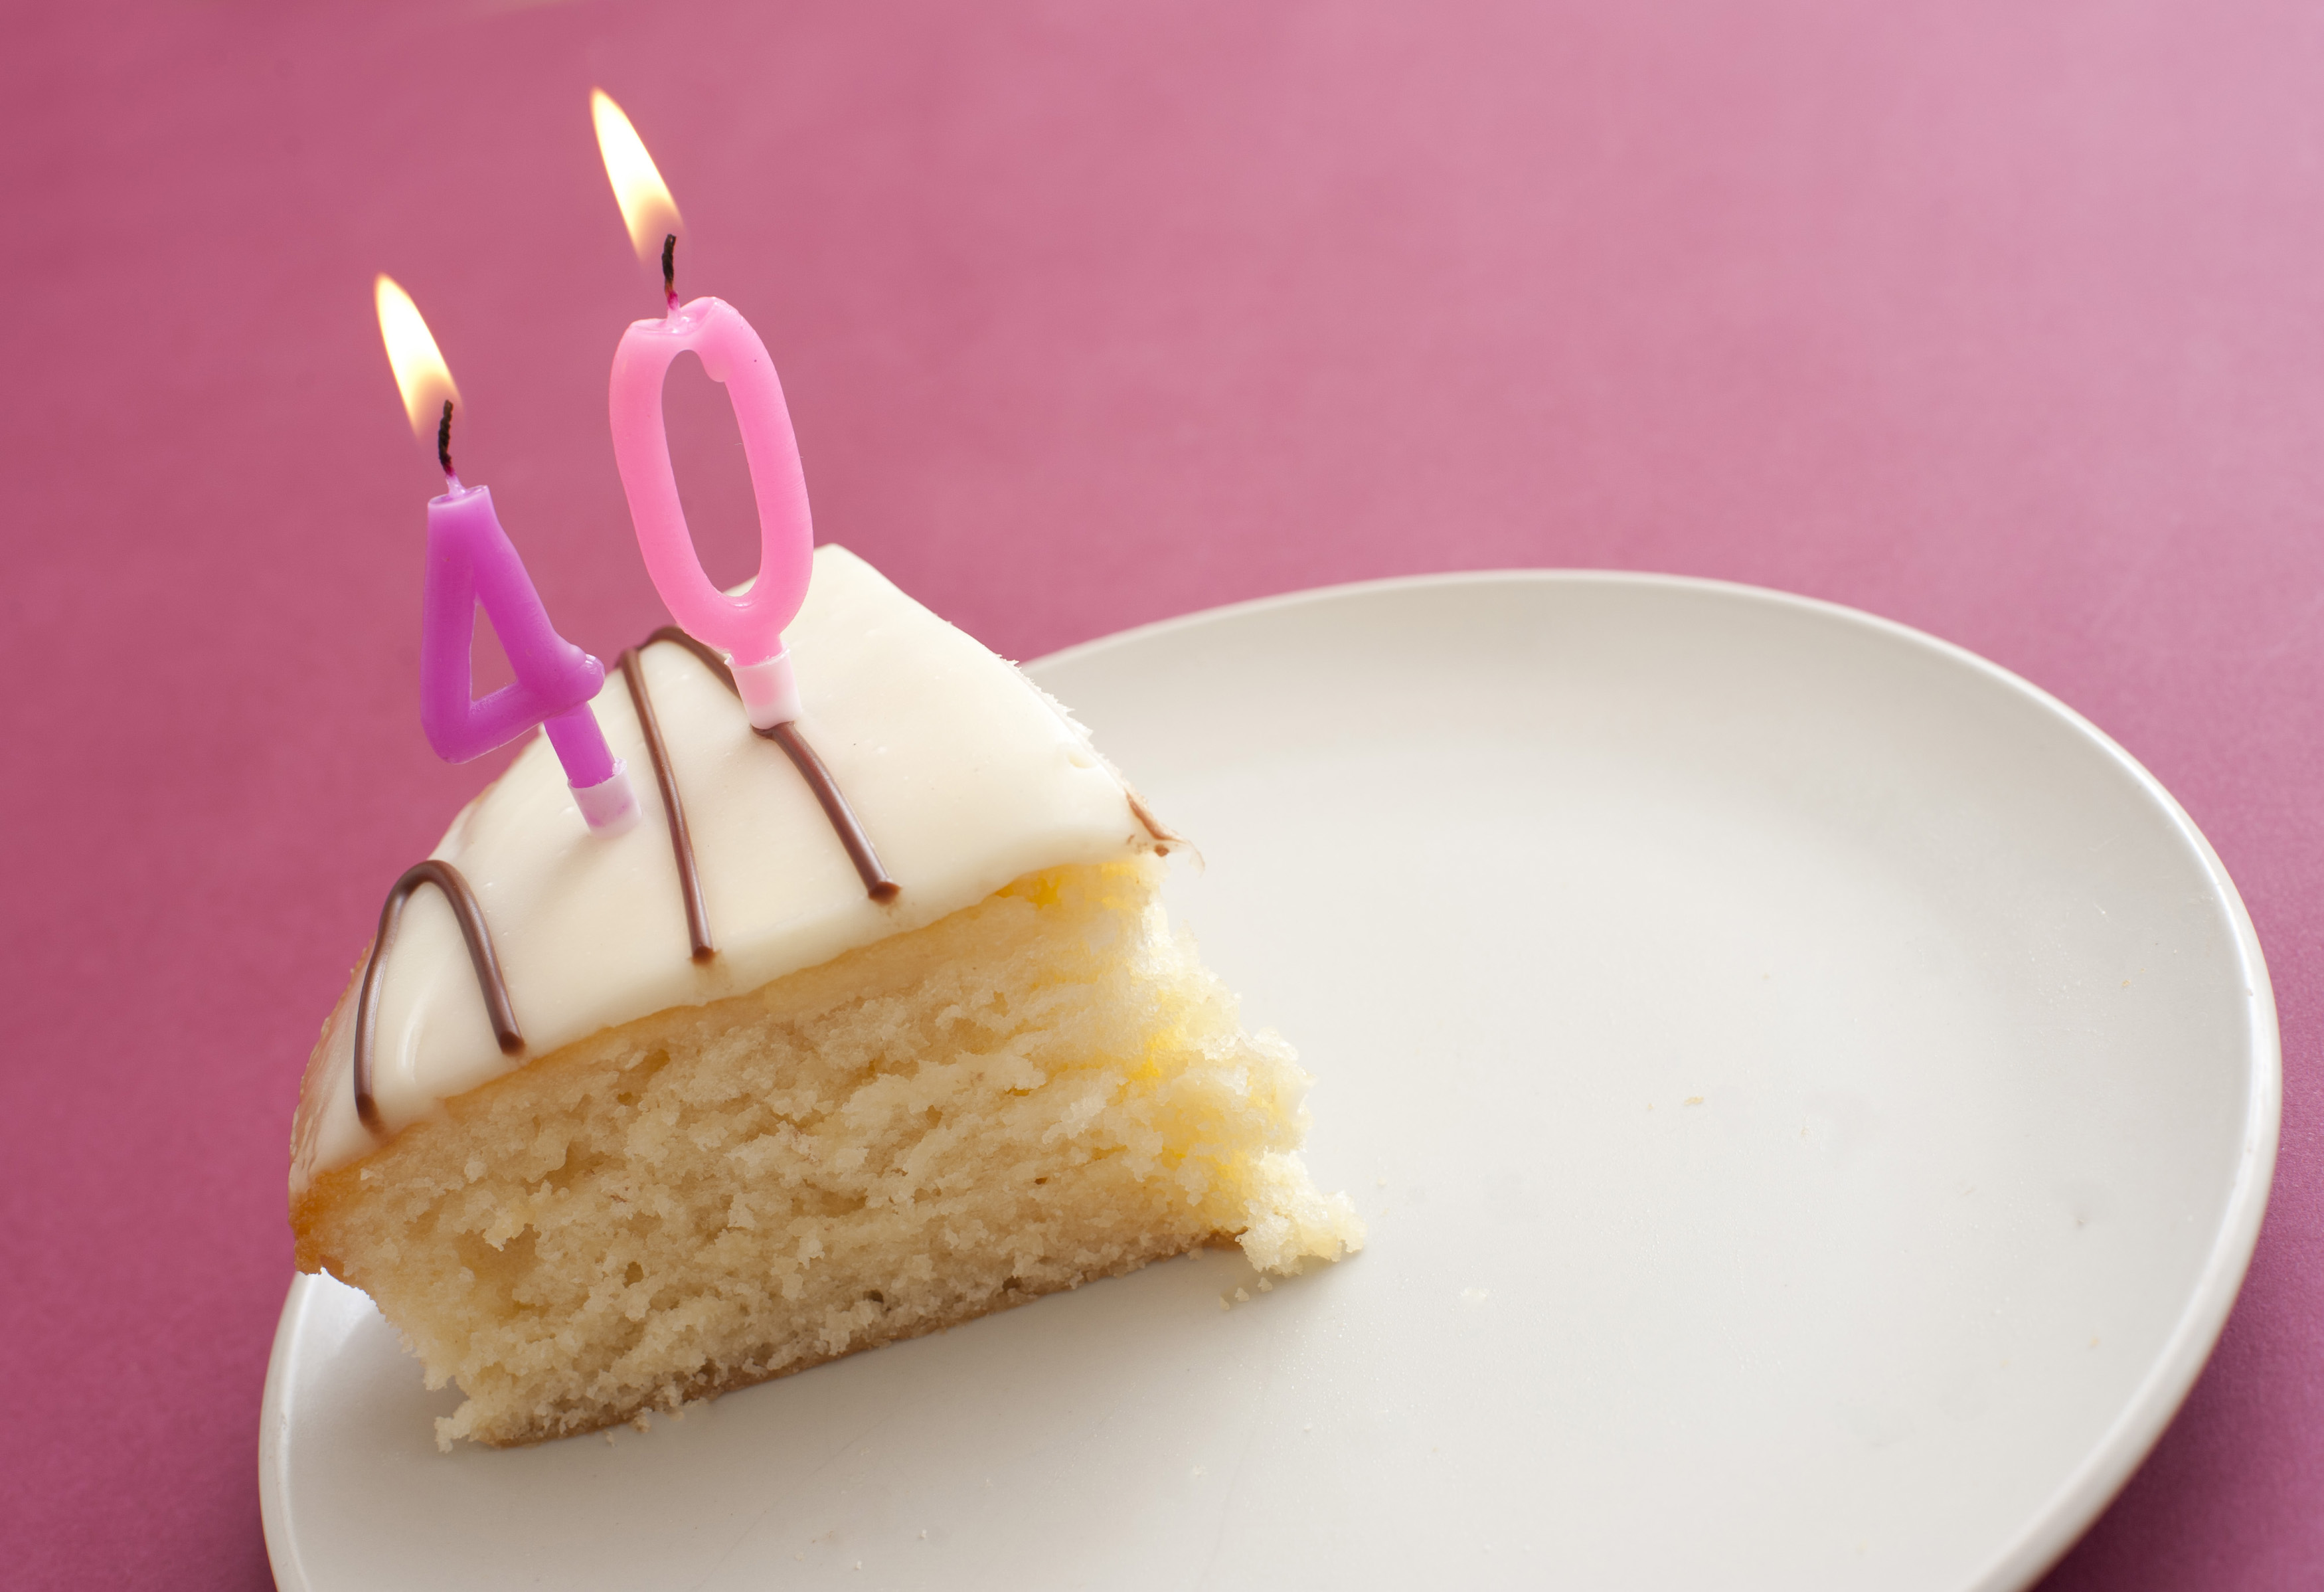 Free Stock Photo 11411 Slice Of 40th Birthday Cake With Candles